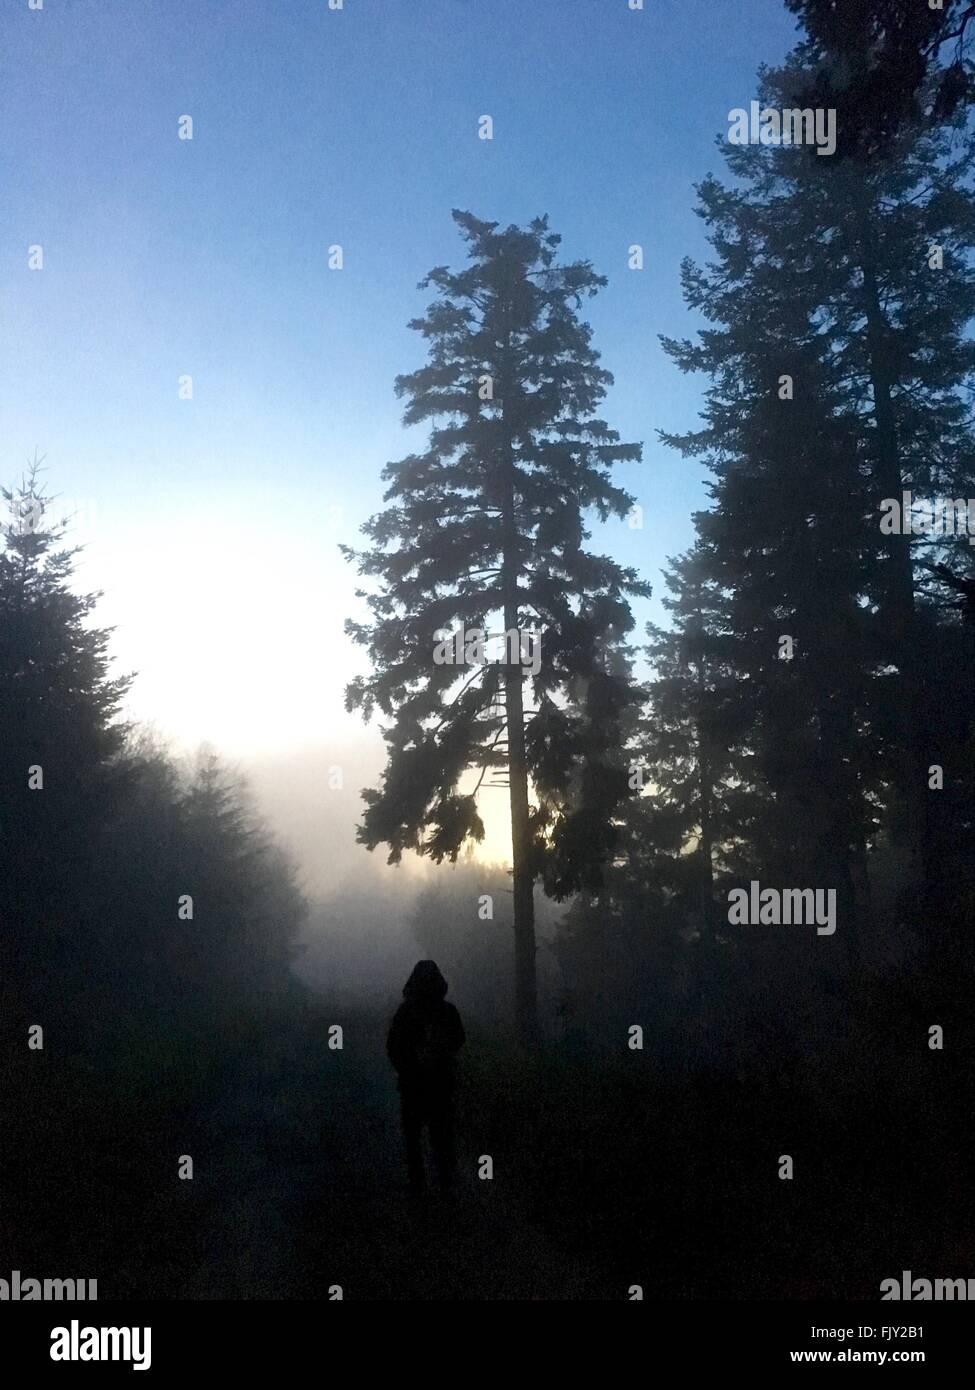 Silhouette Person Standing In Forest During Foggy Weather - Stock Image